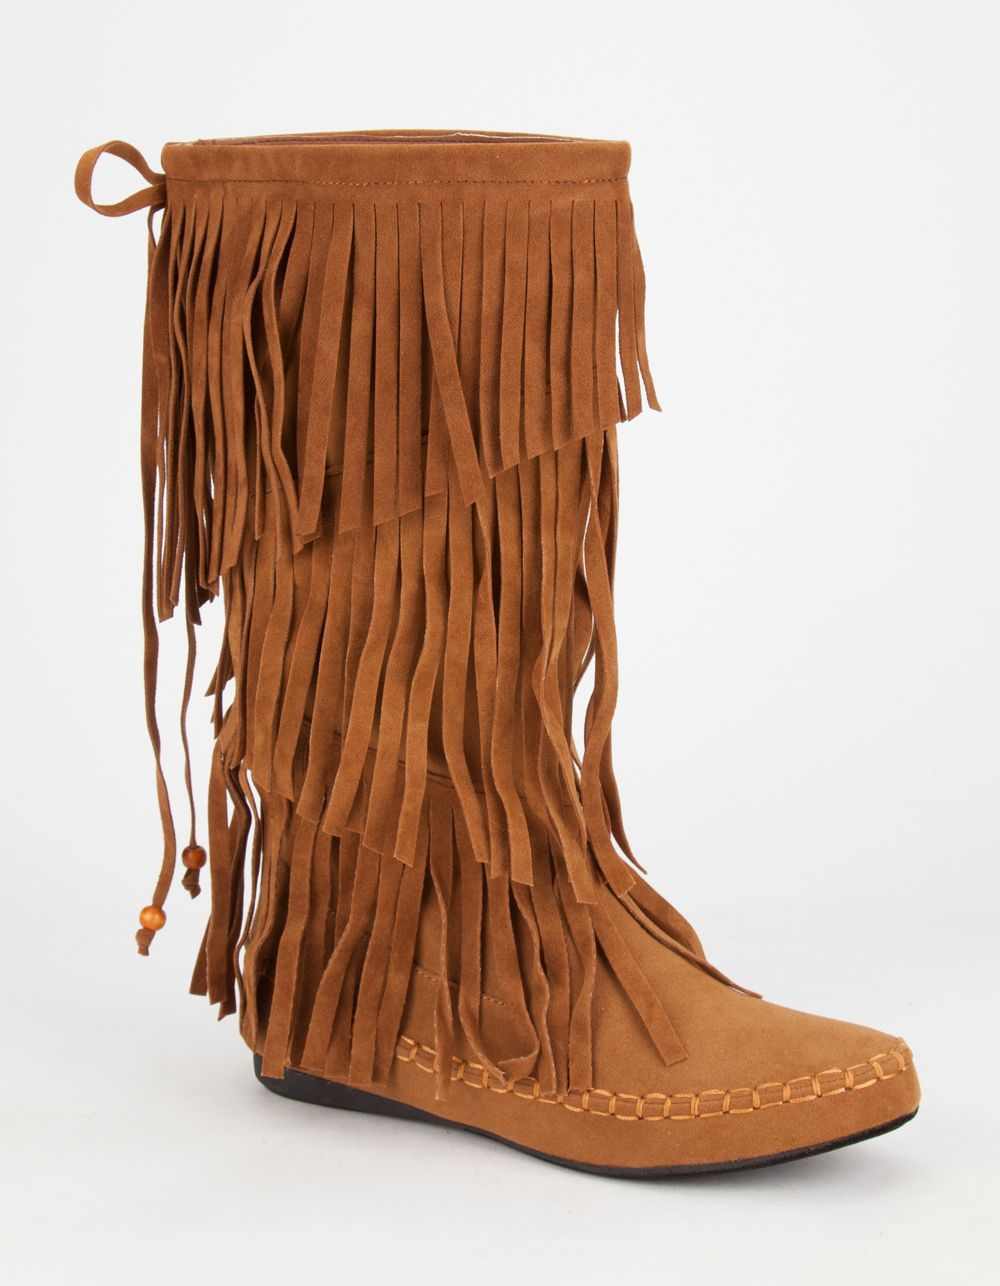 ADRIANA Mudd Womens Tall Fringe Moccasin Boots 272064409 | Boots ...